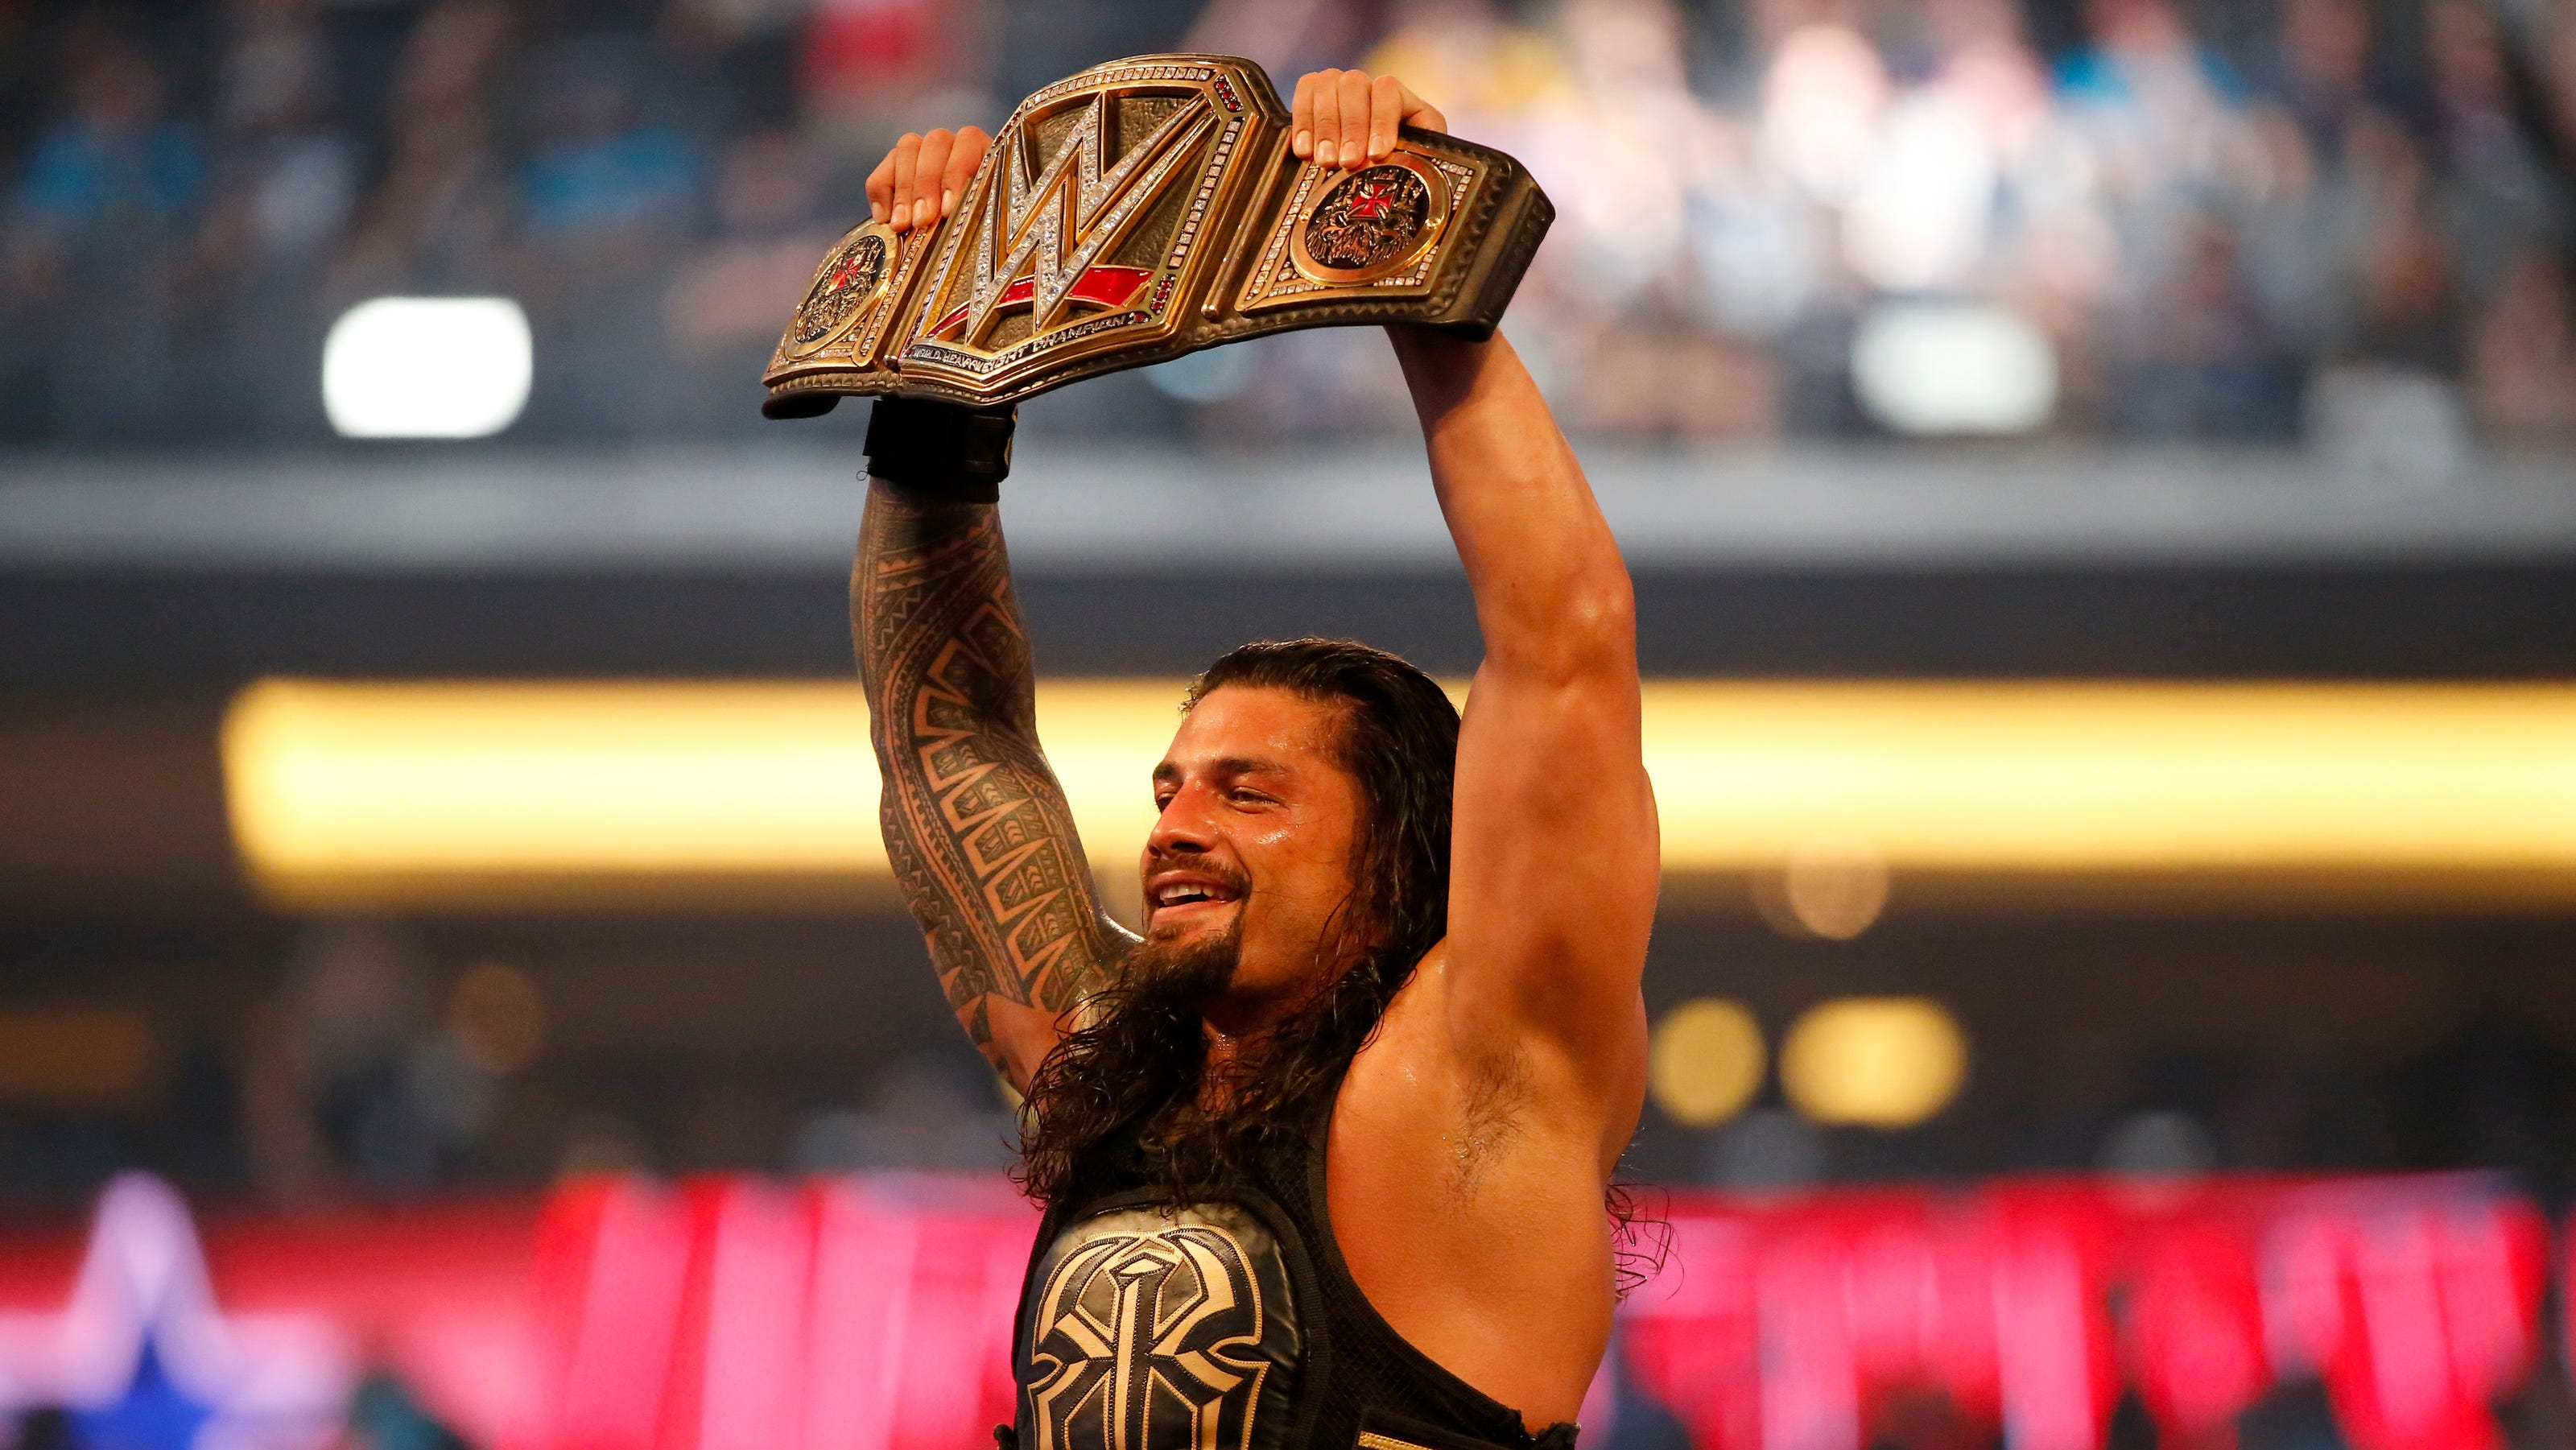 Roman Reigns withdraws from WWE Wrestlemania 36, per reports